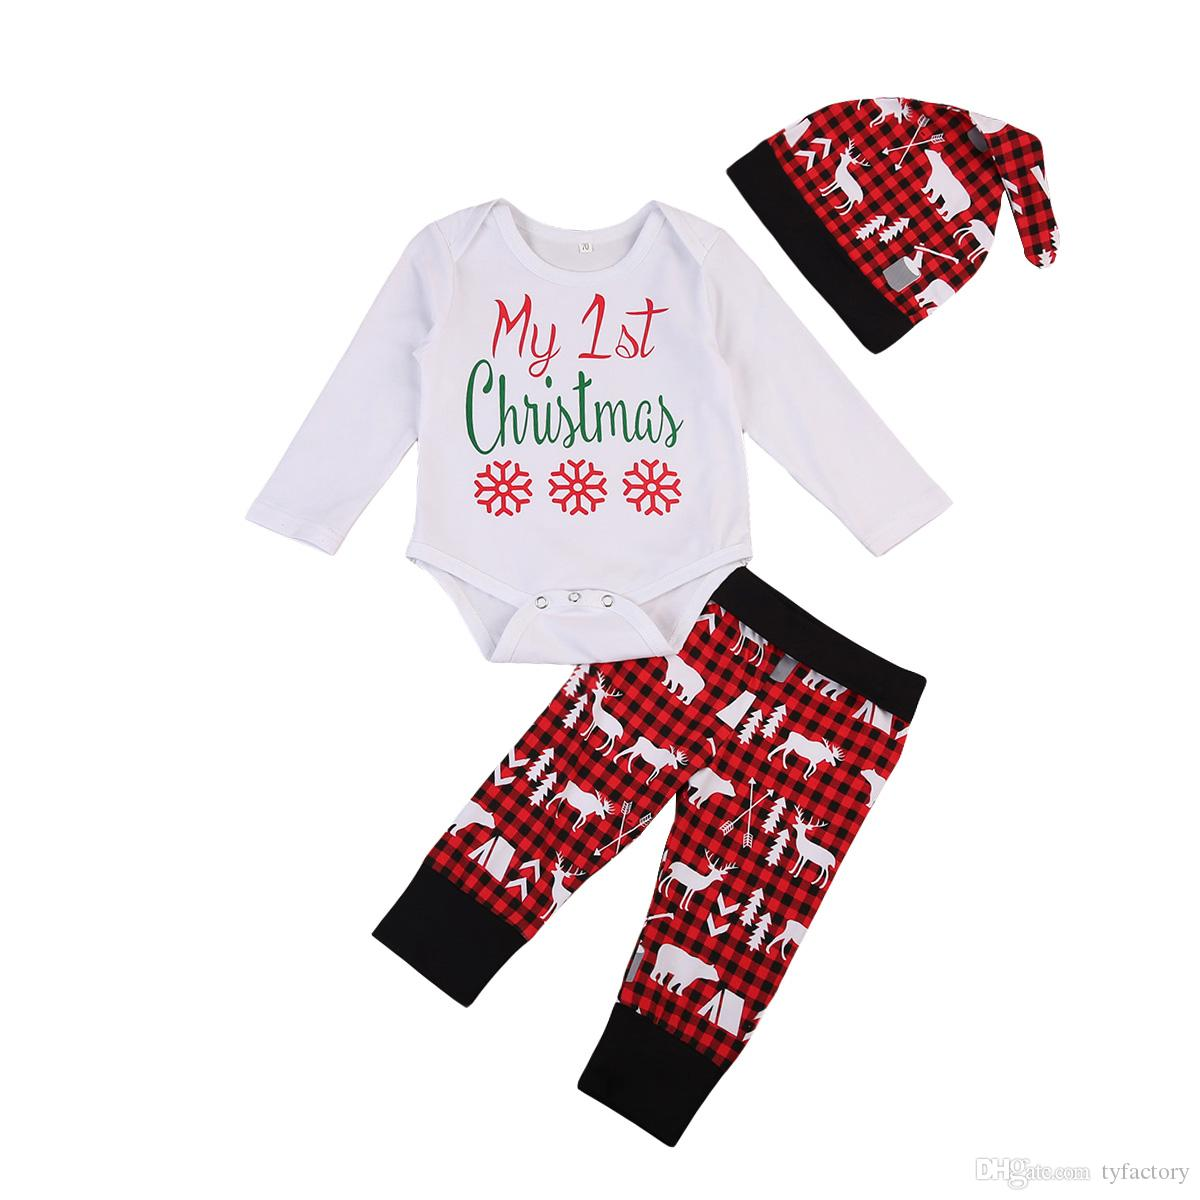 c347e75a3 2019 Kids Fashion Clothing Baby Boy Girl Christmas Sets Newborn Infant  Romper+Animals Pants+Hat Baby Boys Girls Bodysuits Outfits Snow Tree From  Tyfactory, ...